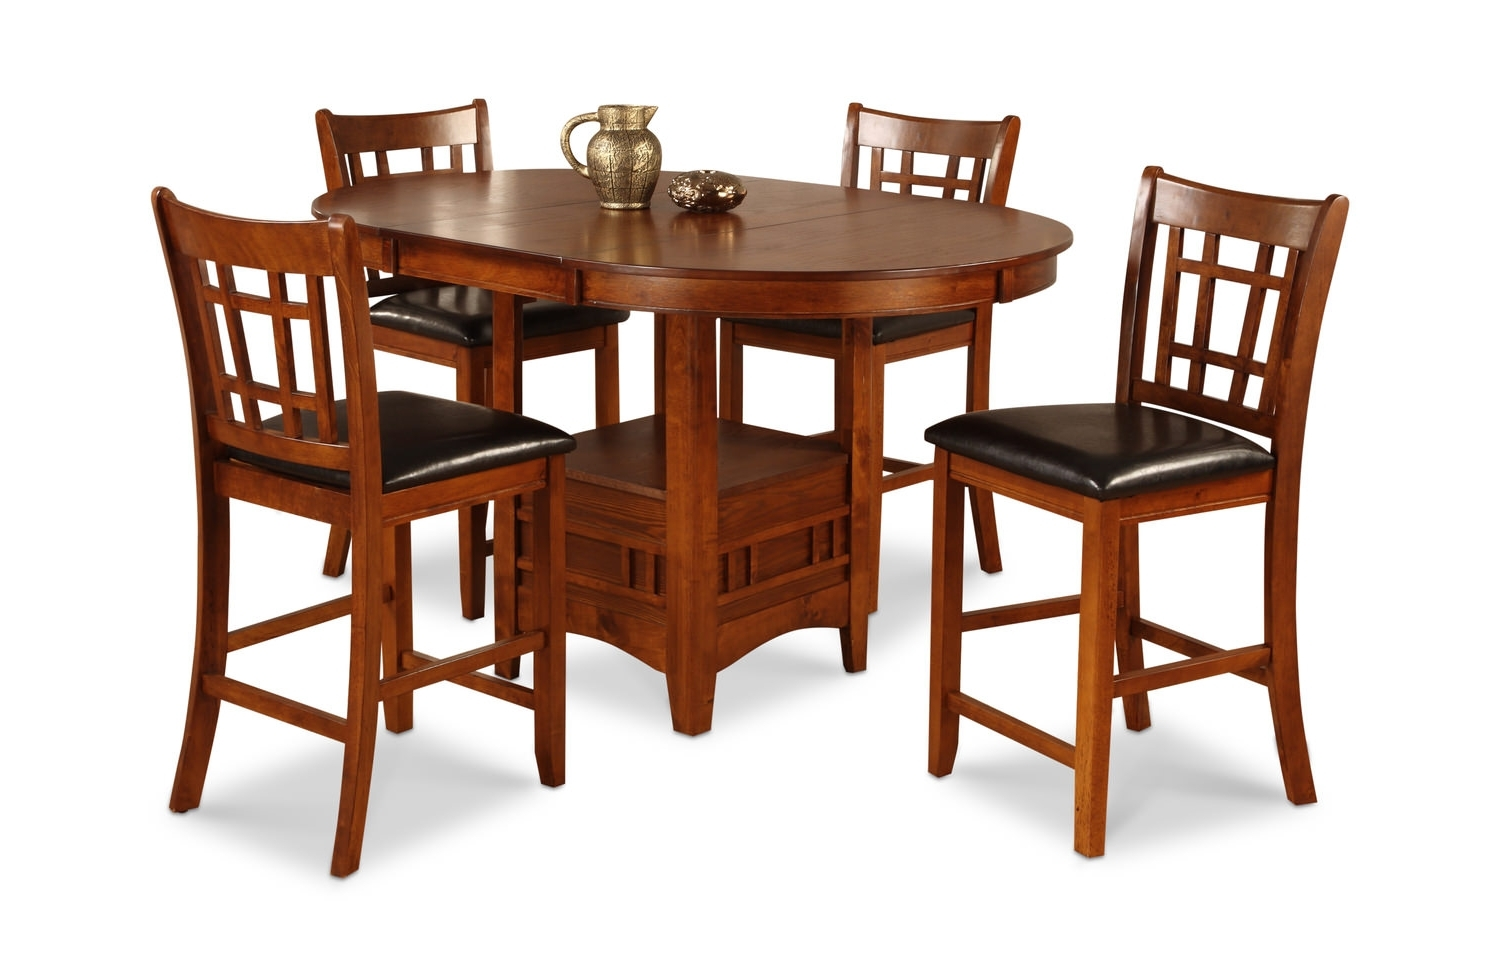 Well Liked Chapleau Ii 9 Piece Extension Dining Table Sets Inside Dining Sets – Kitchen & Dining Room Sets – Hom Furniture (View 18 of 25)